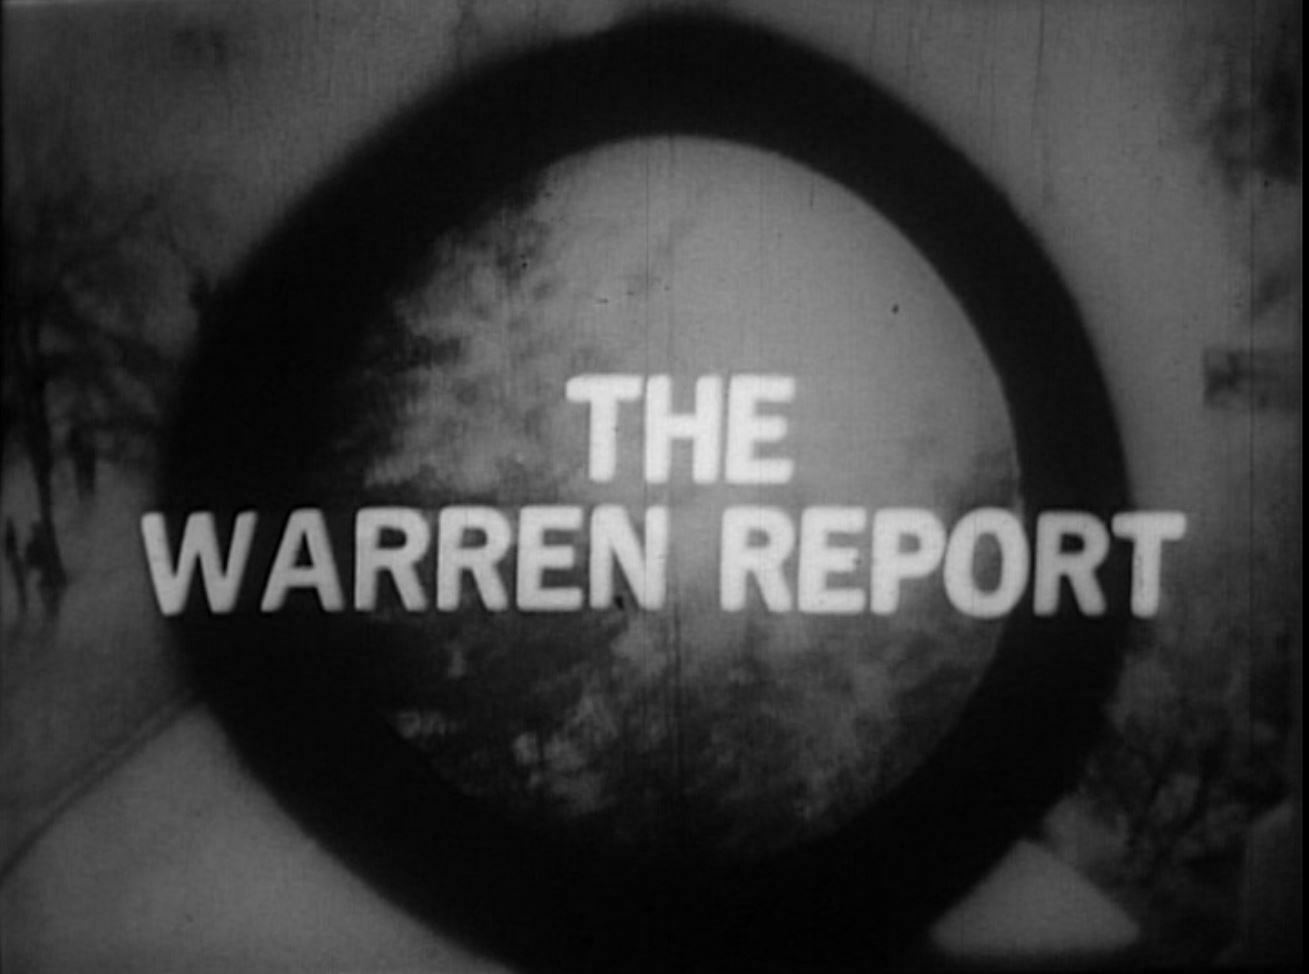 November 22nd and The Warren Report